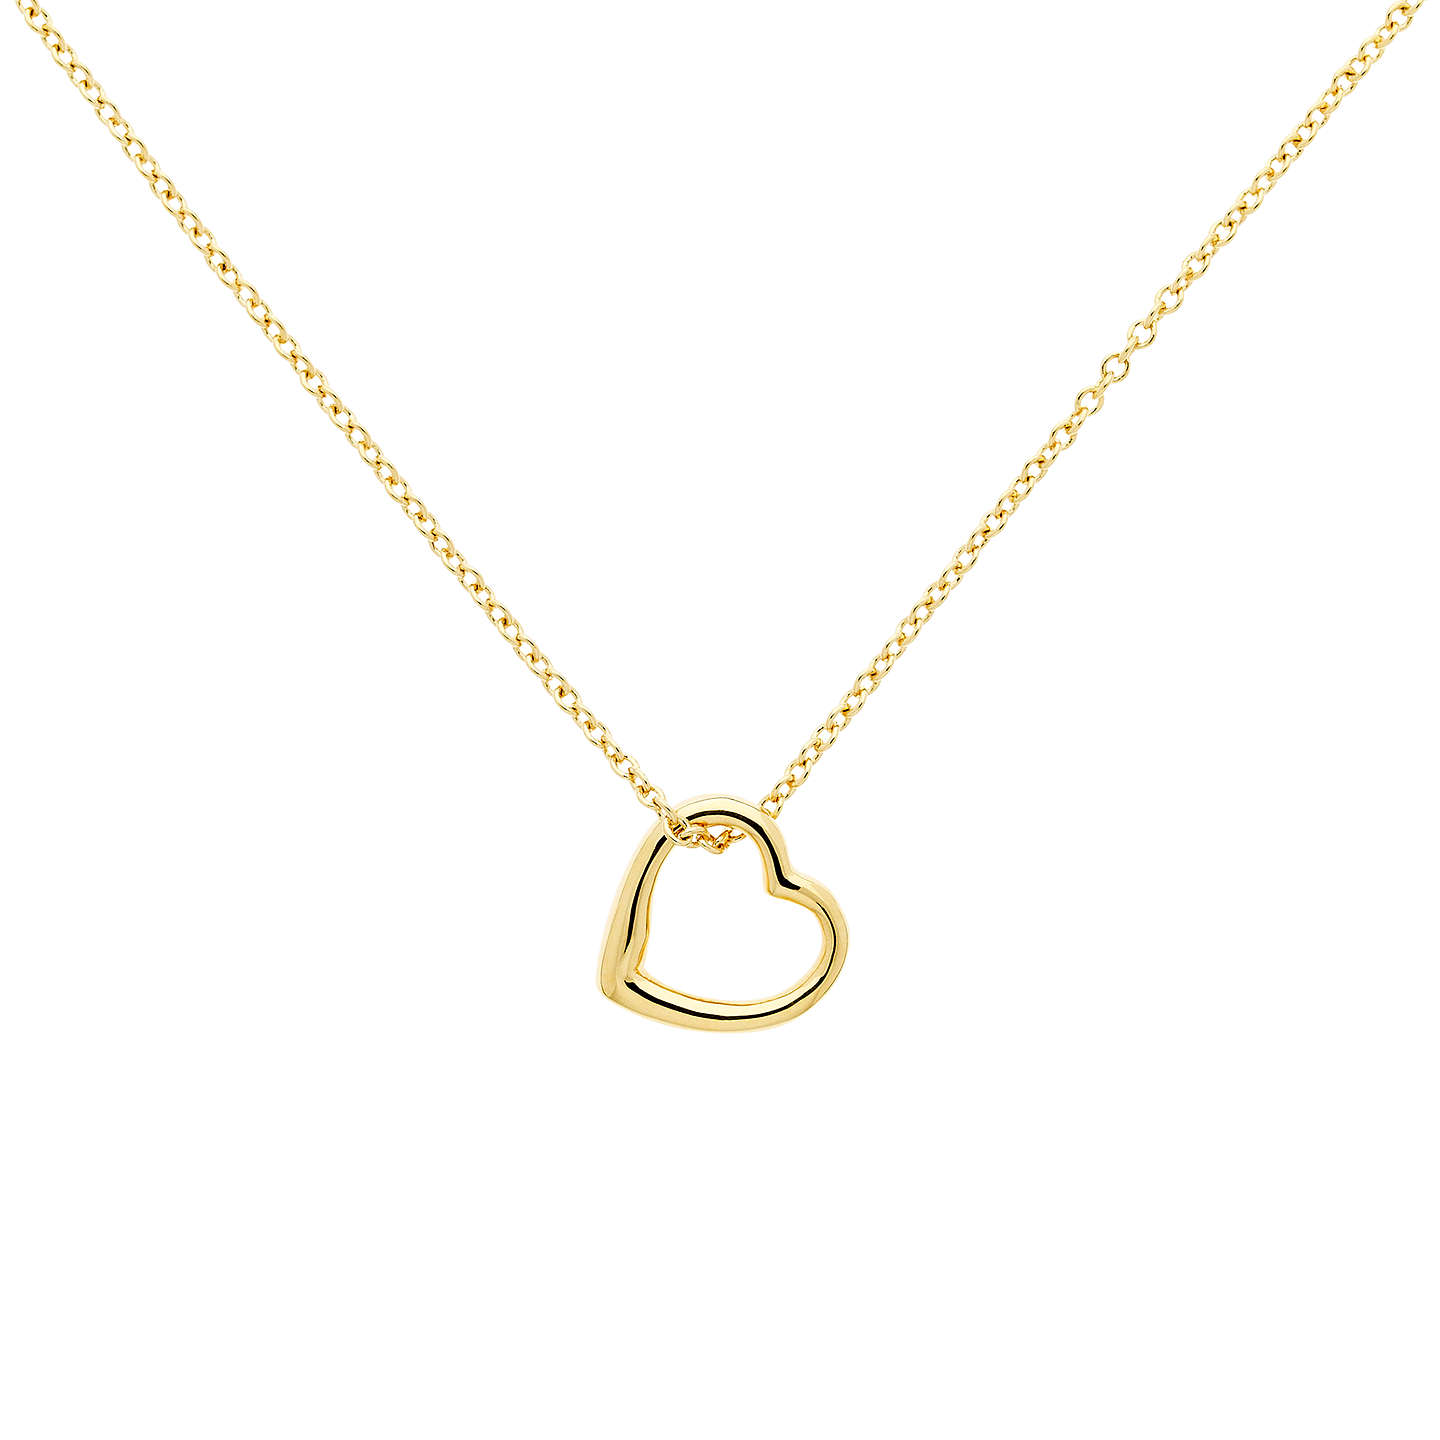 heart heartmininecklacezilver charm mini necklace mamaloves